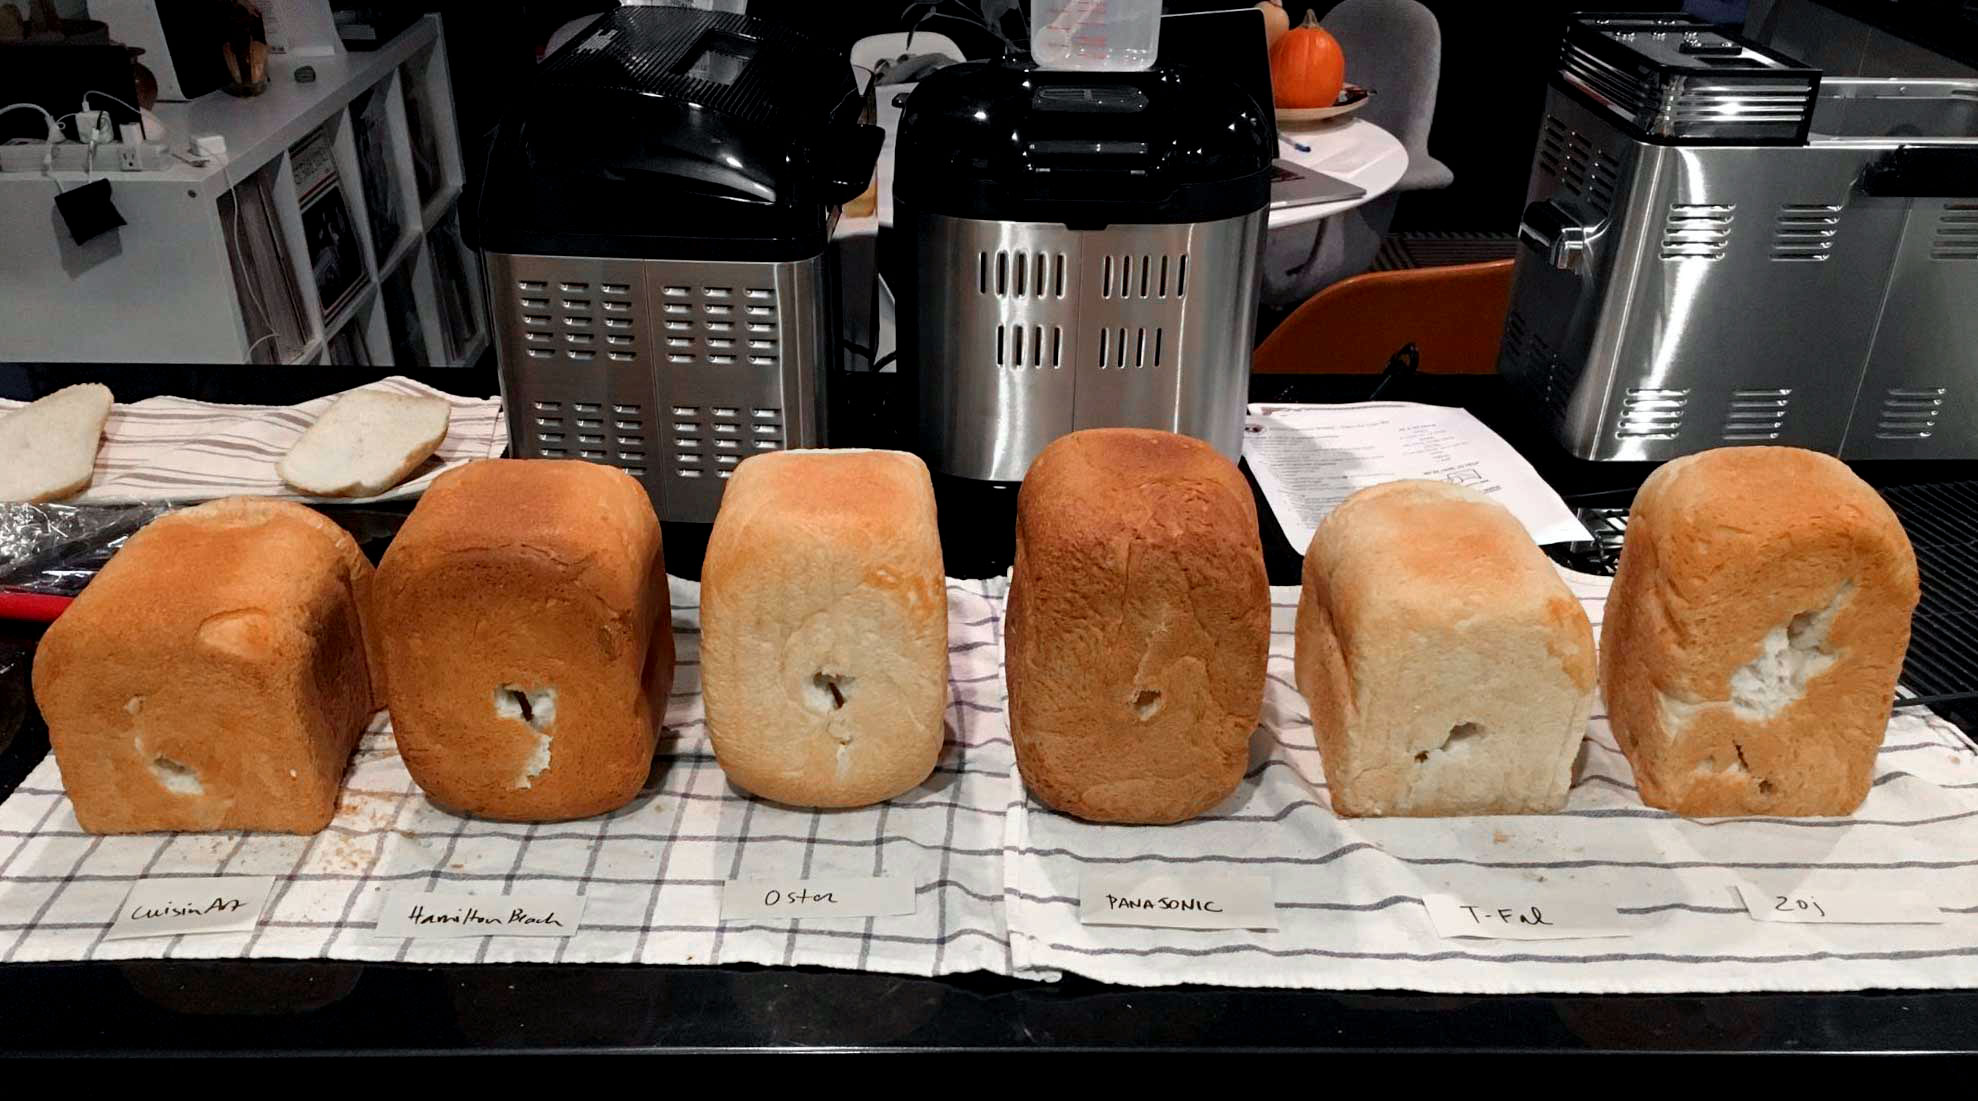 Holes in bottom of loaves of bread from various models of bread machines.